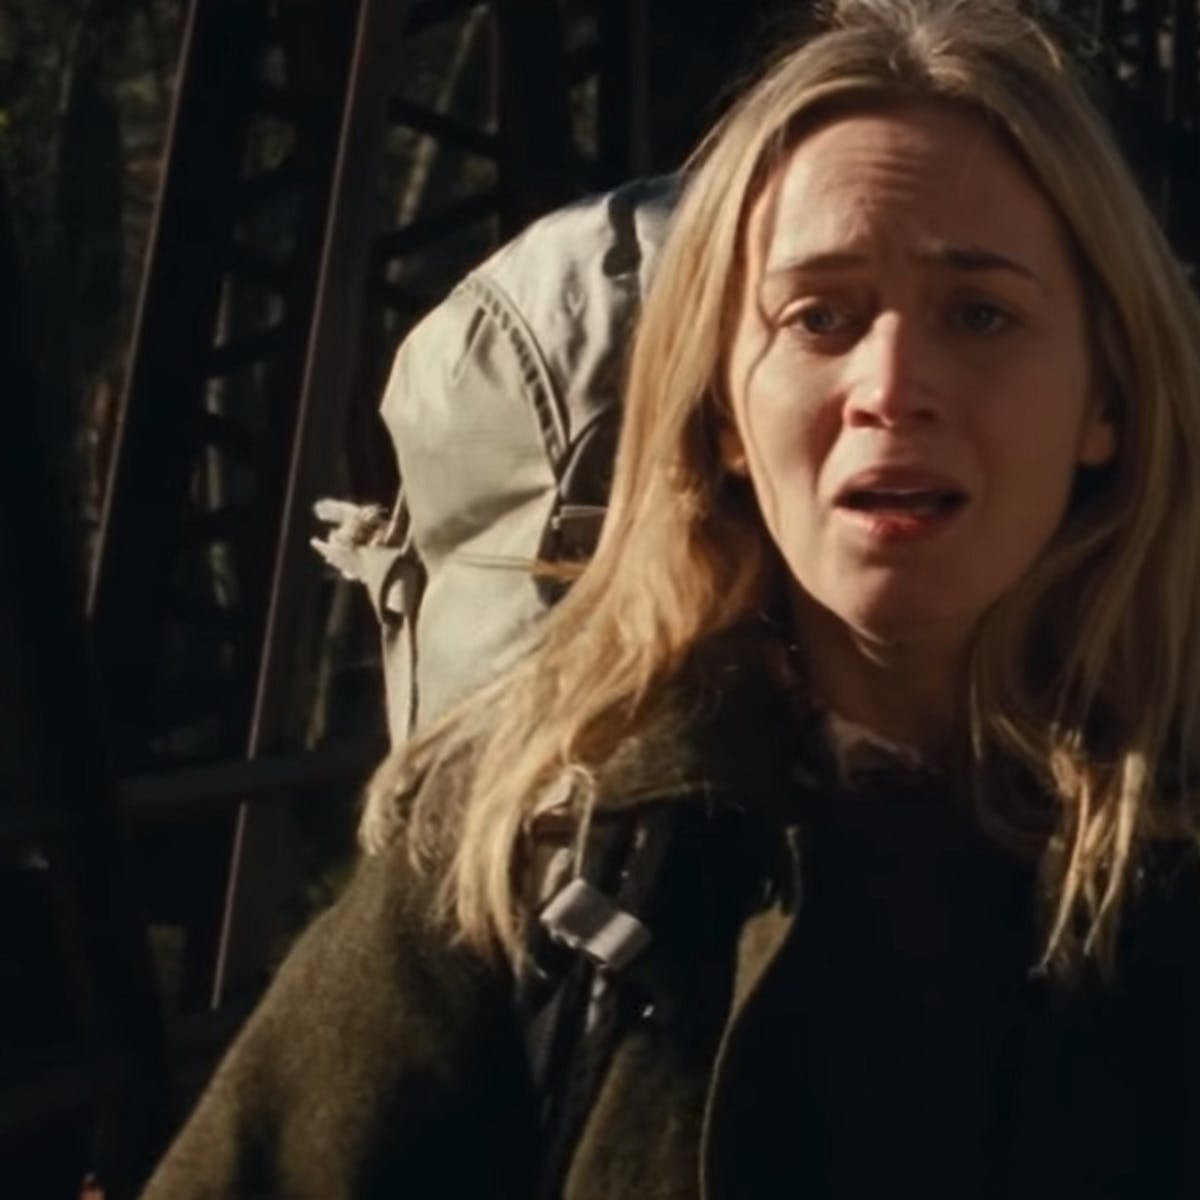 A Quiet Place' Monster Looks Nothing like the Original Creature